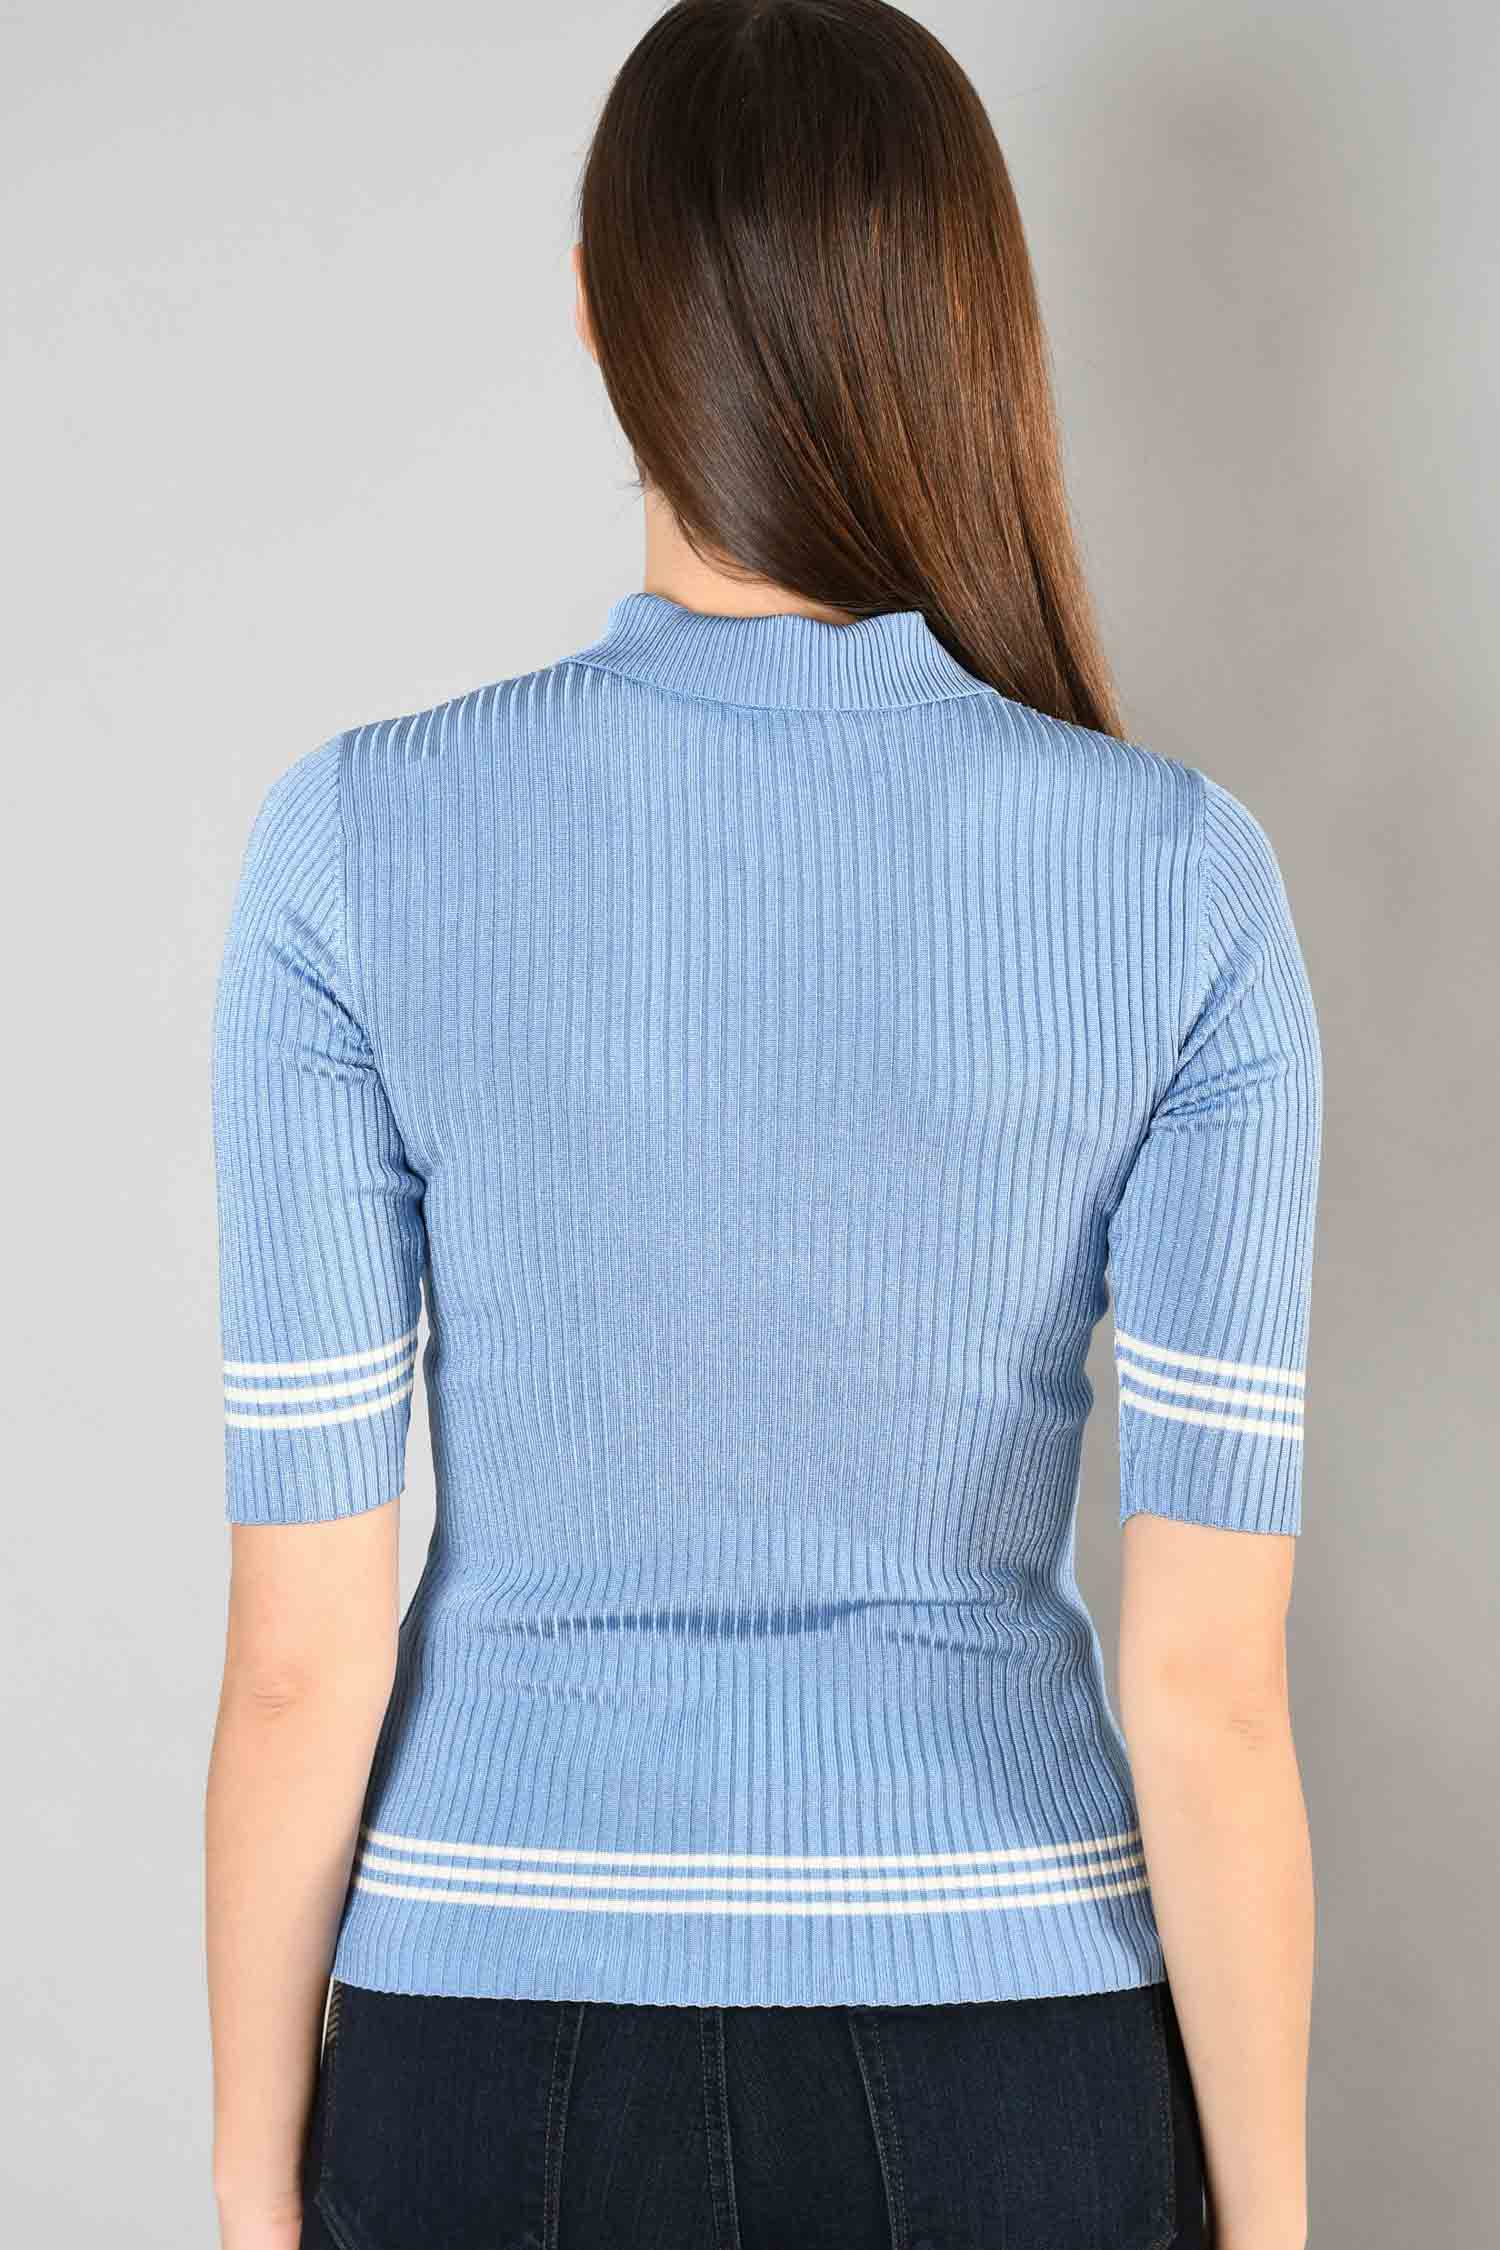 Sandro Blue Ribbed 3/4 Sleeve Top w/ White Stripes Size 1